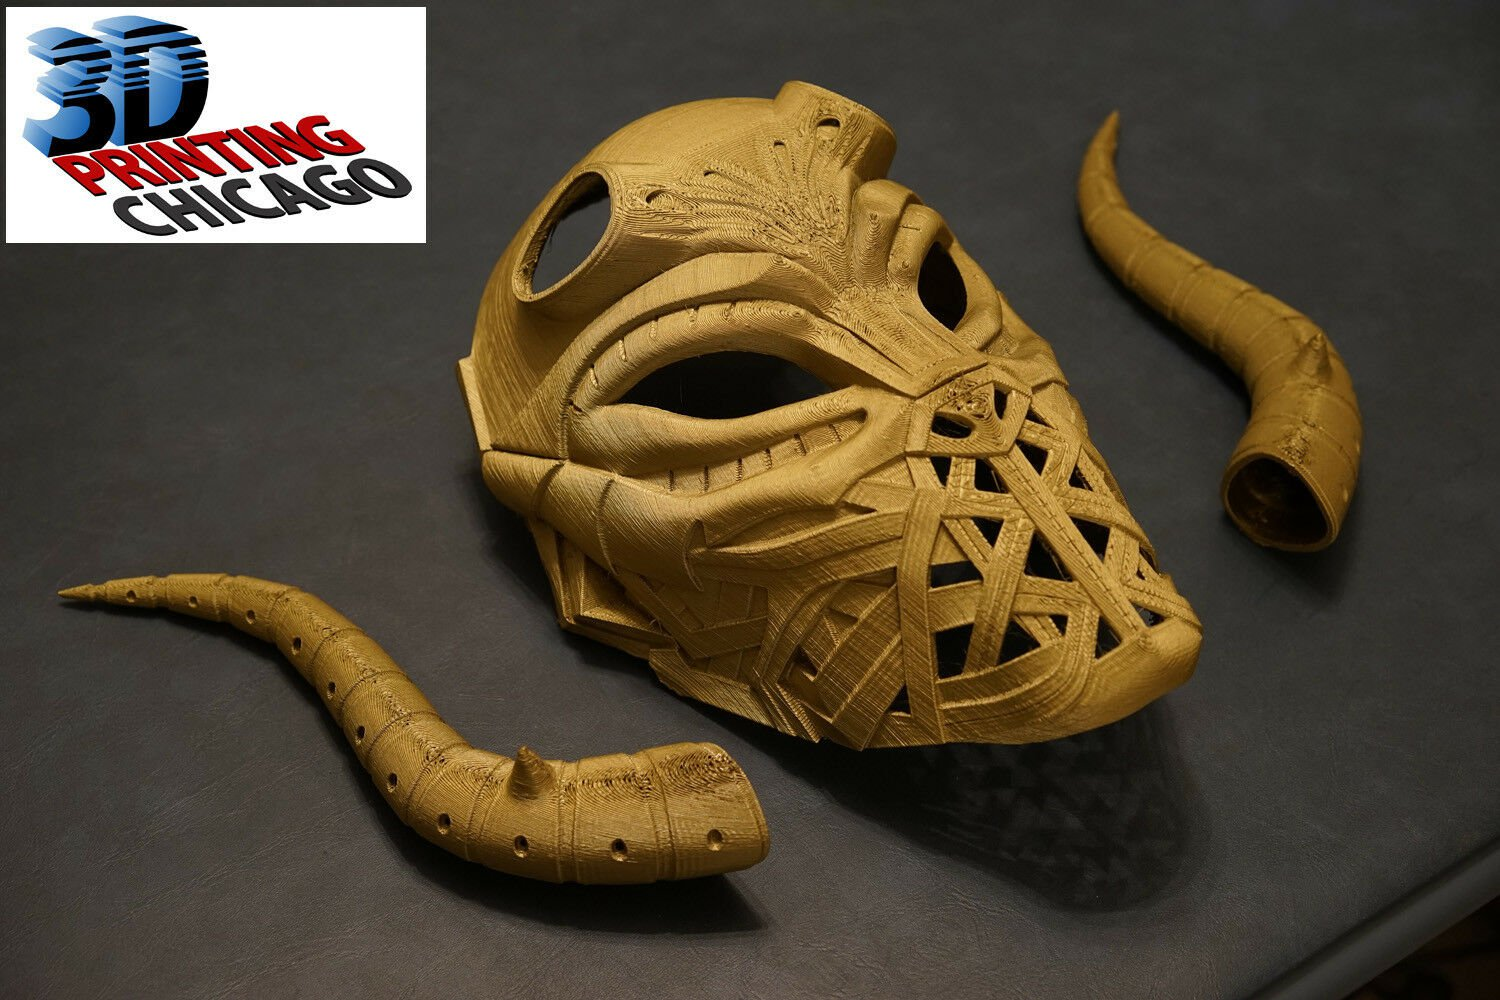 3D Printing Service � 3d-printing-chicago will Print 3D any designs up to 60cc